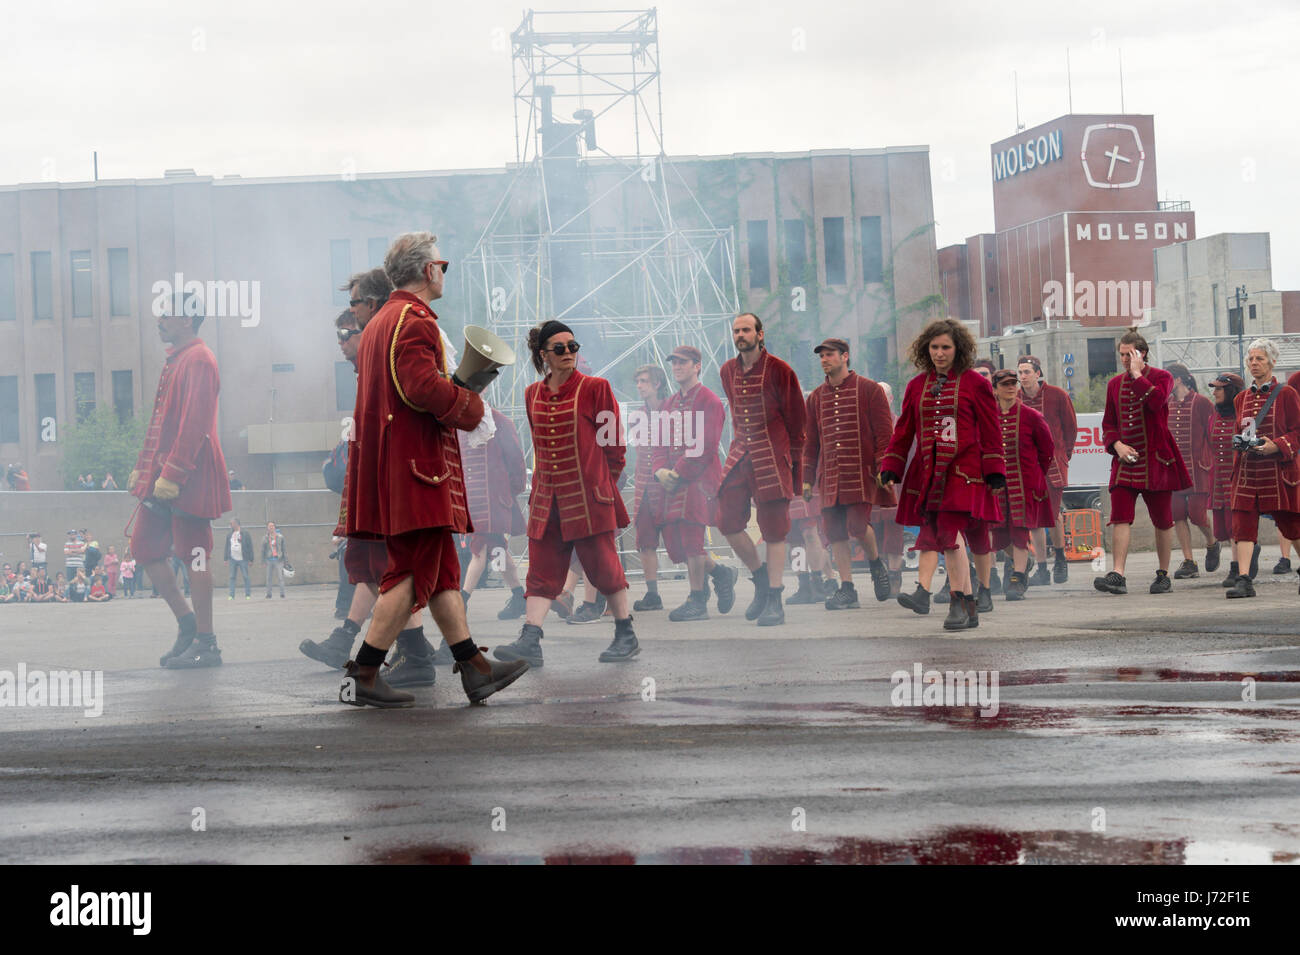 Montreal, CA - 21 May 2017: Royal de Luxe Giants as part of the commemorations of the 375th anniversary of Montreal - Stock Image